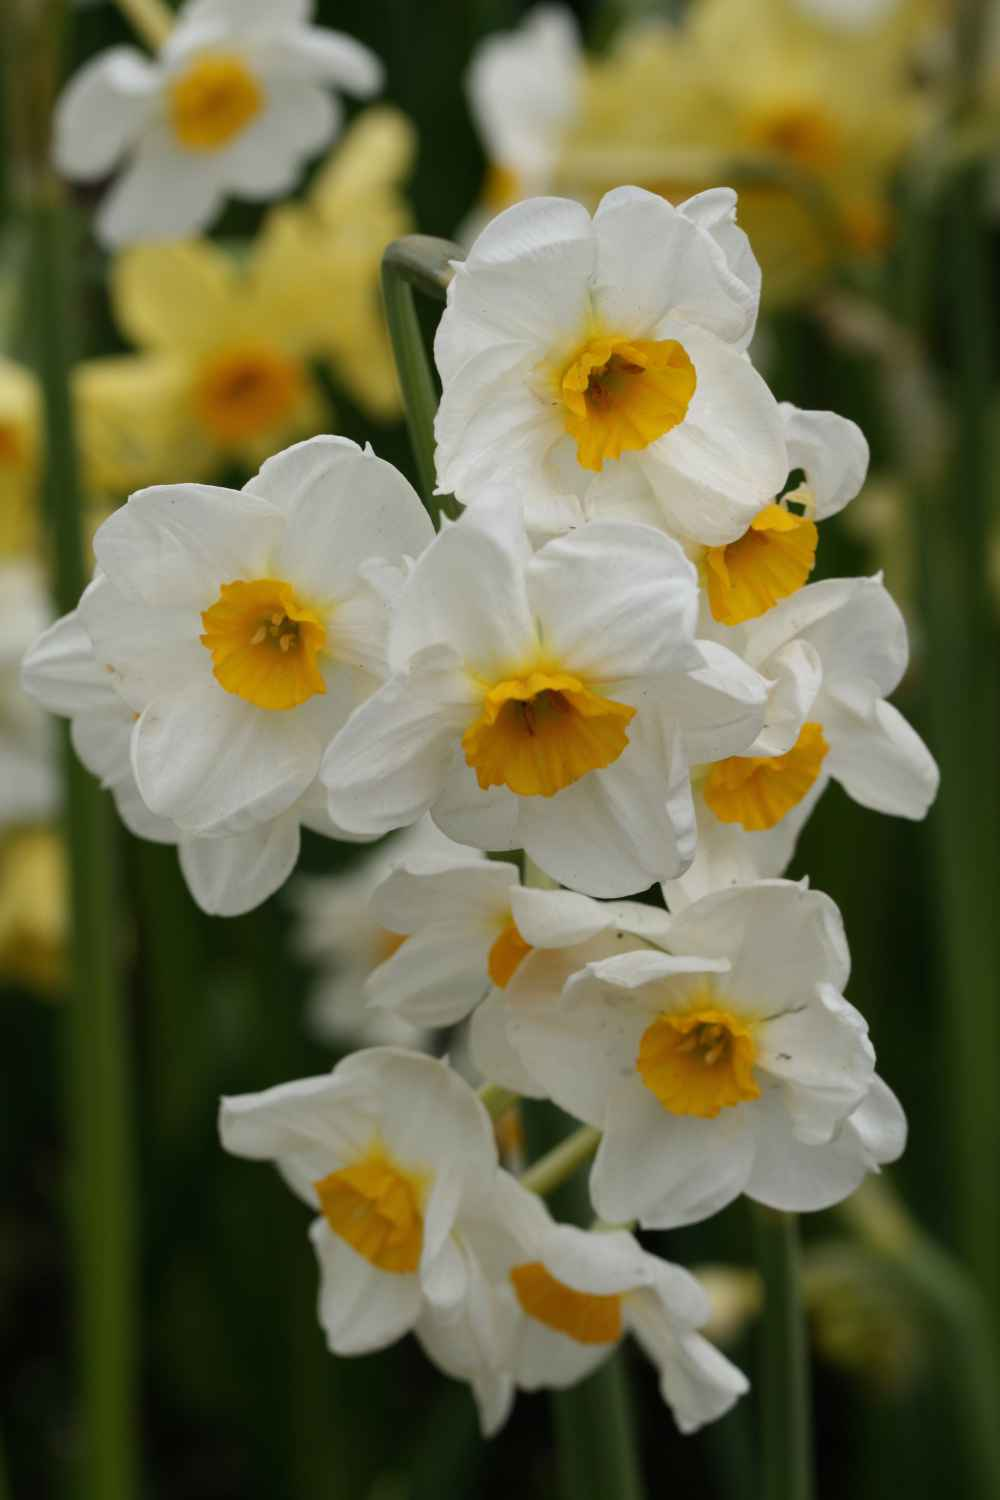 Narcissus 'Laurens Koster'